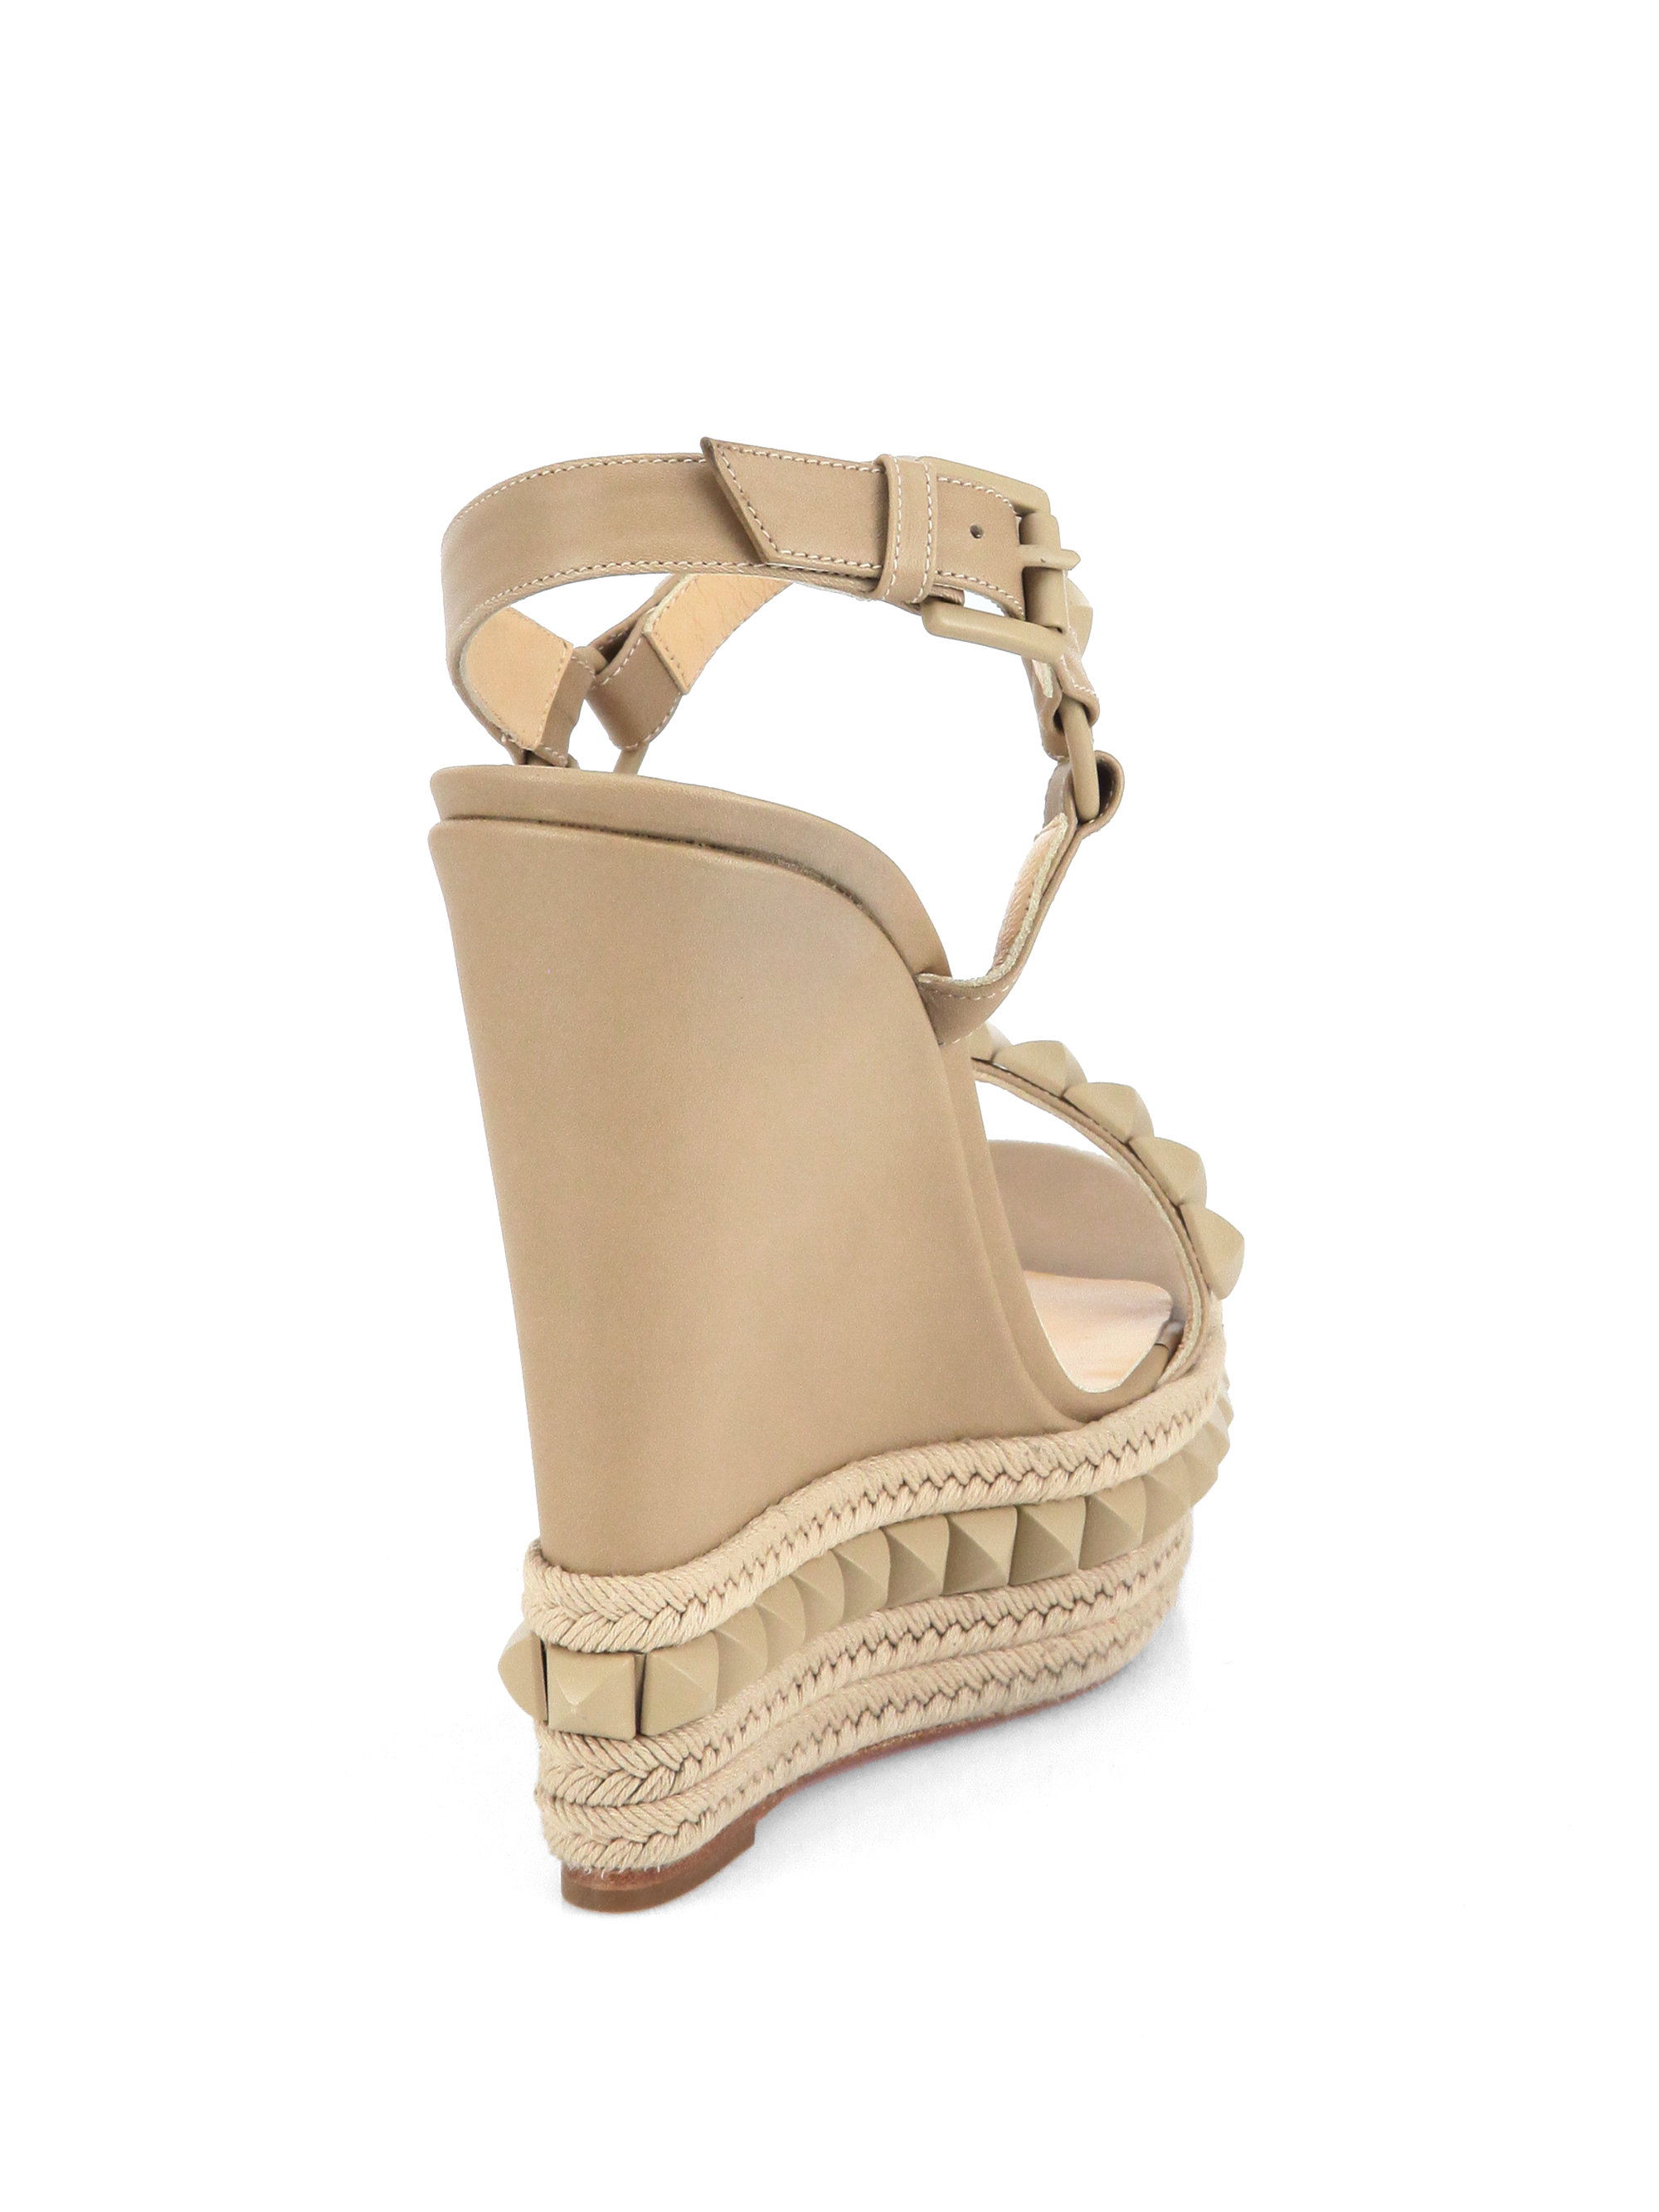 imitation louis vuitton shoes - christian-louboutin-beige-cataclou-studded-leather-wedge-sandals-product-3-15240281-713918694.jpeg